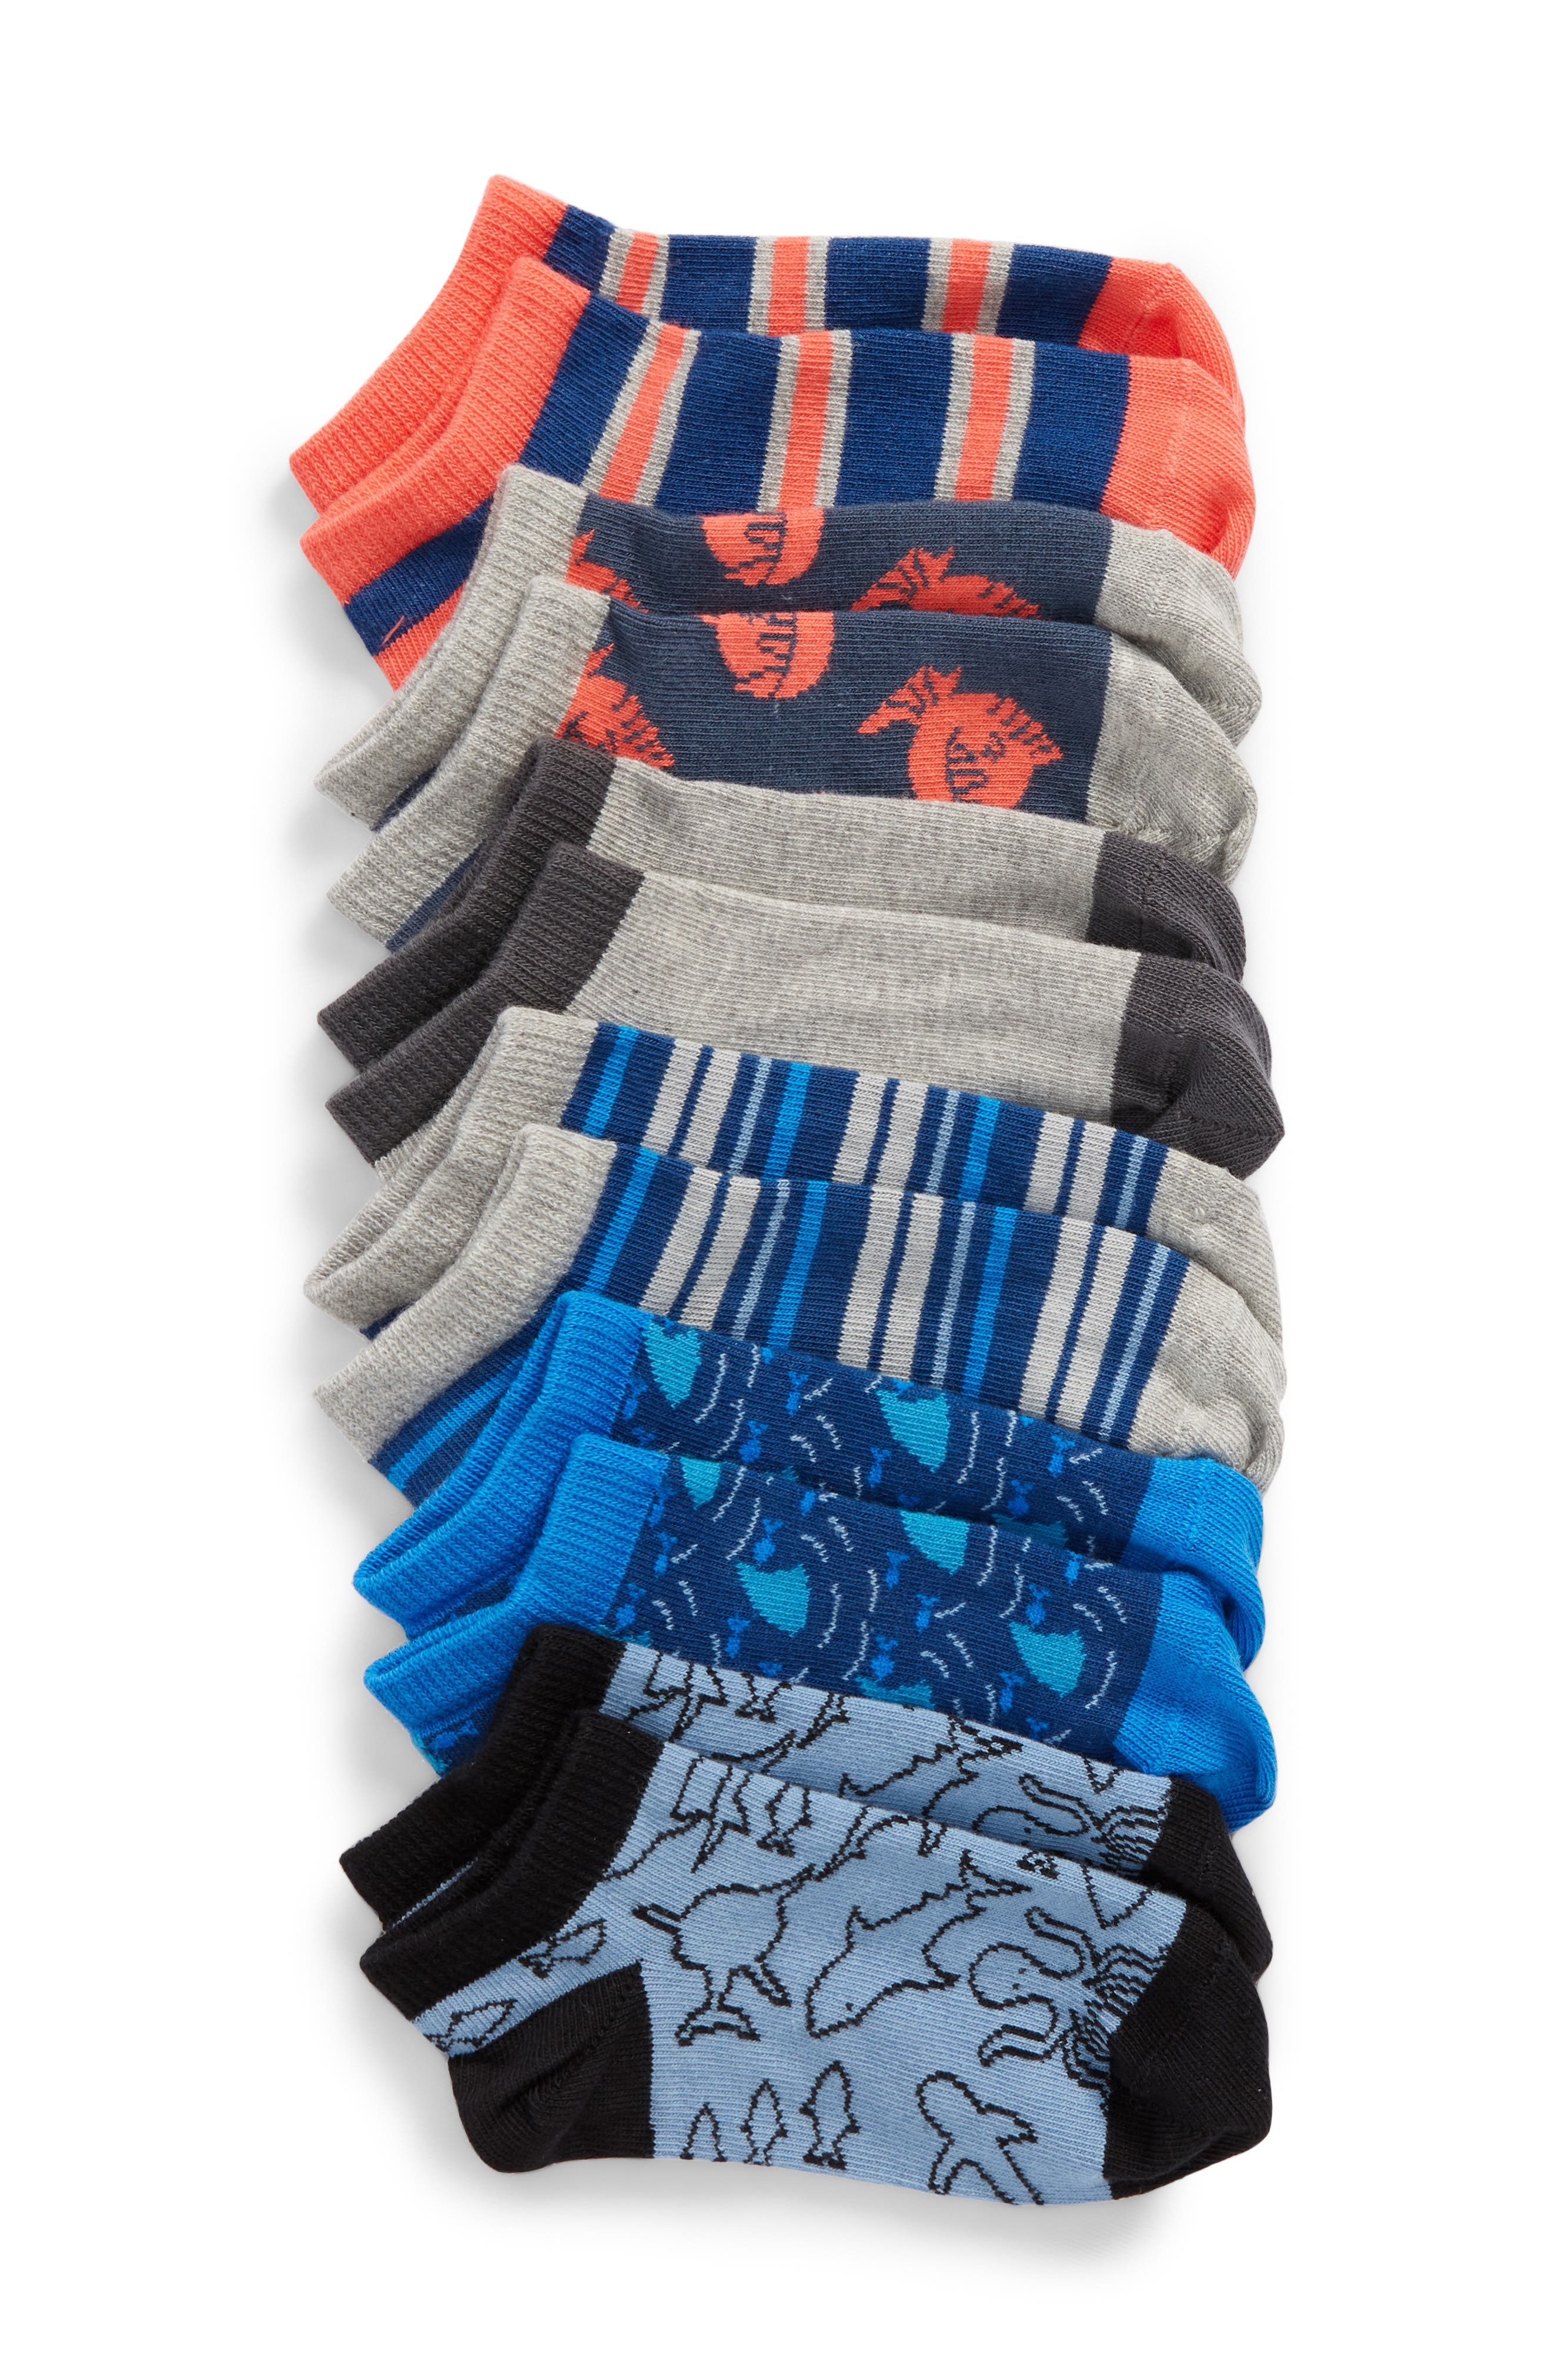 6-Pack Puffer Fish Low Cut Socks,                         Main,                         color, Blue Cloud Multi